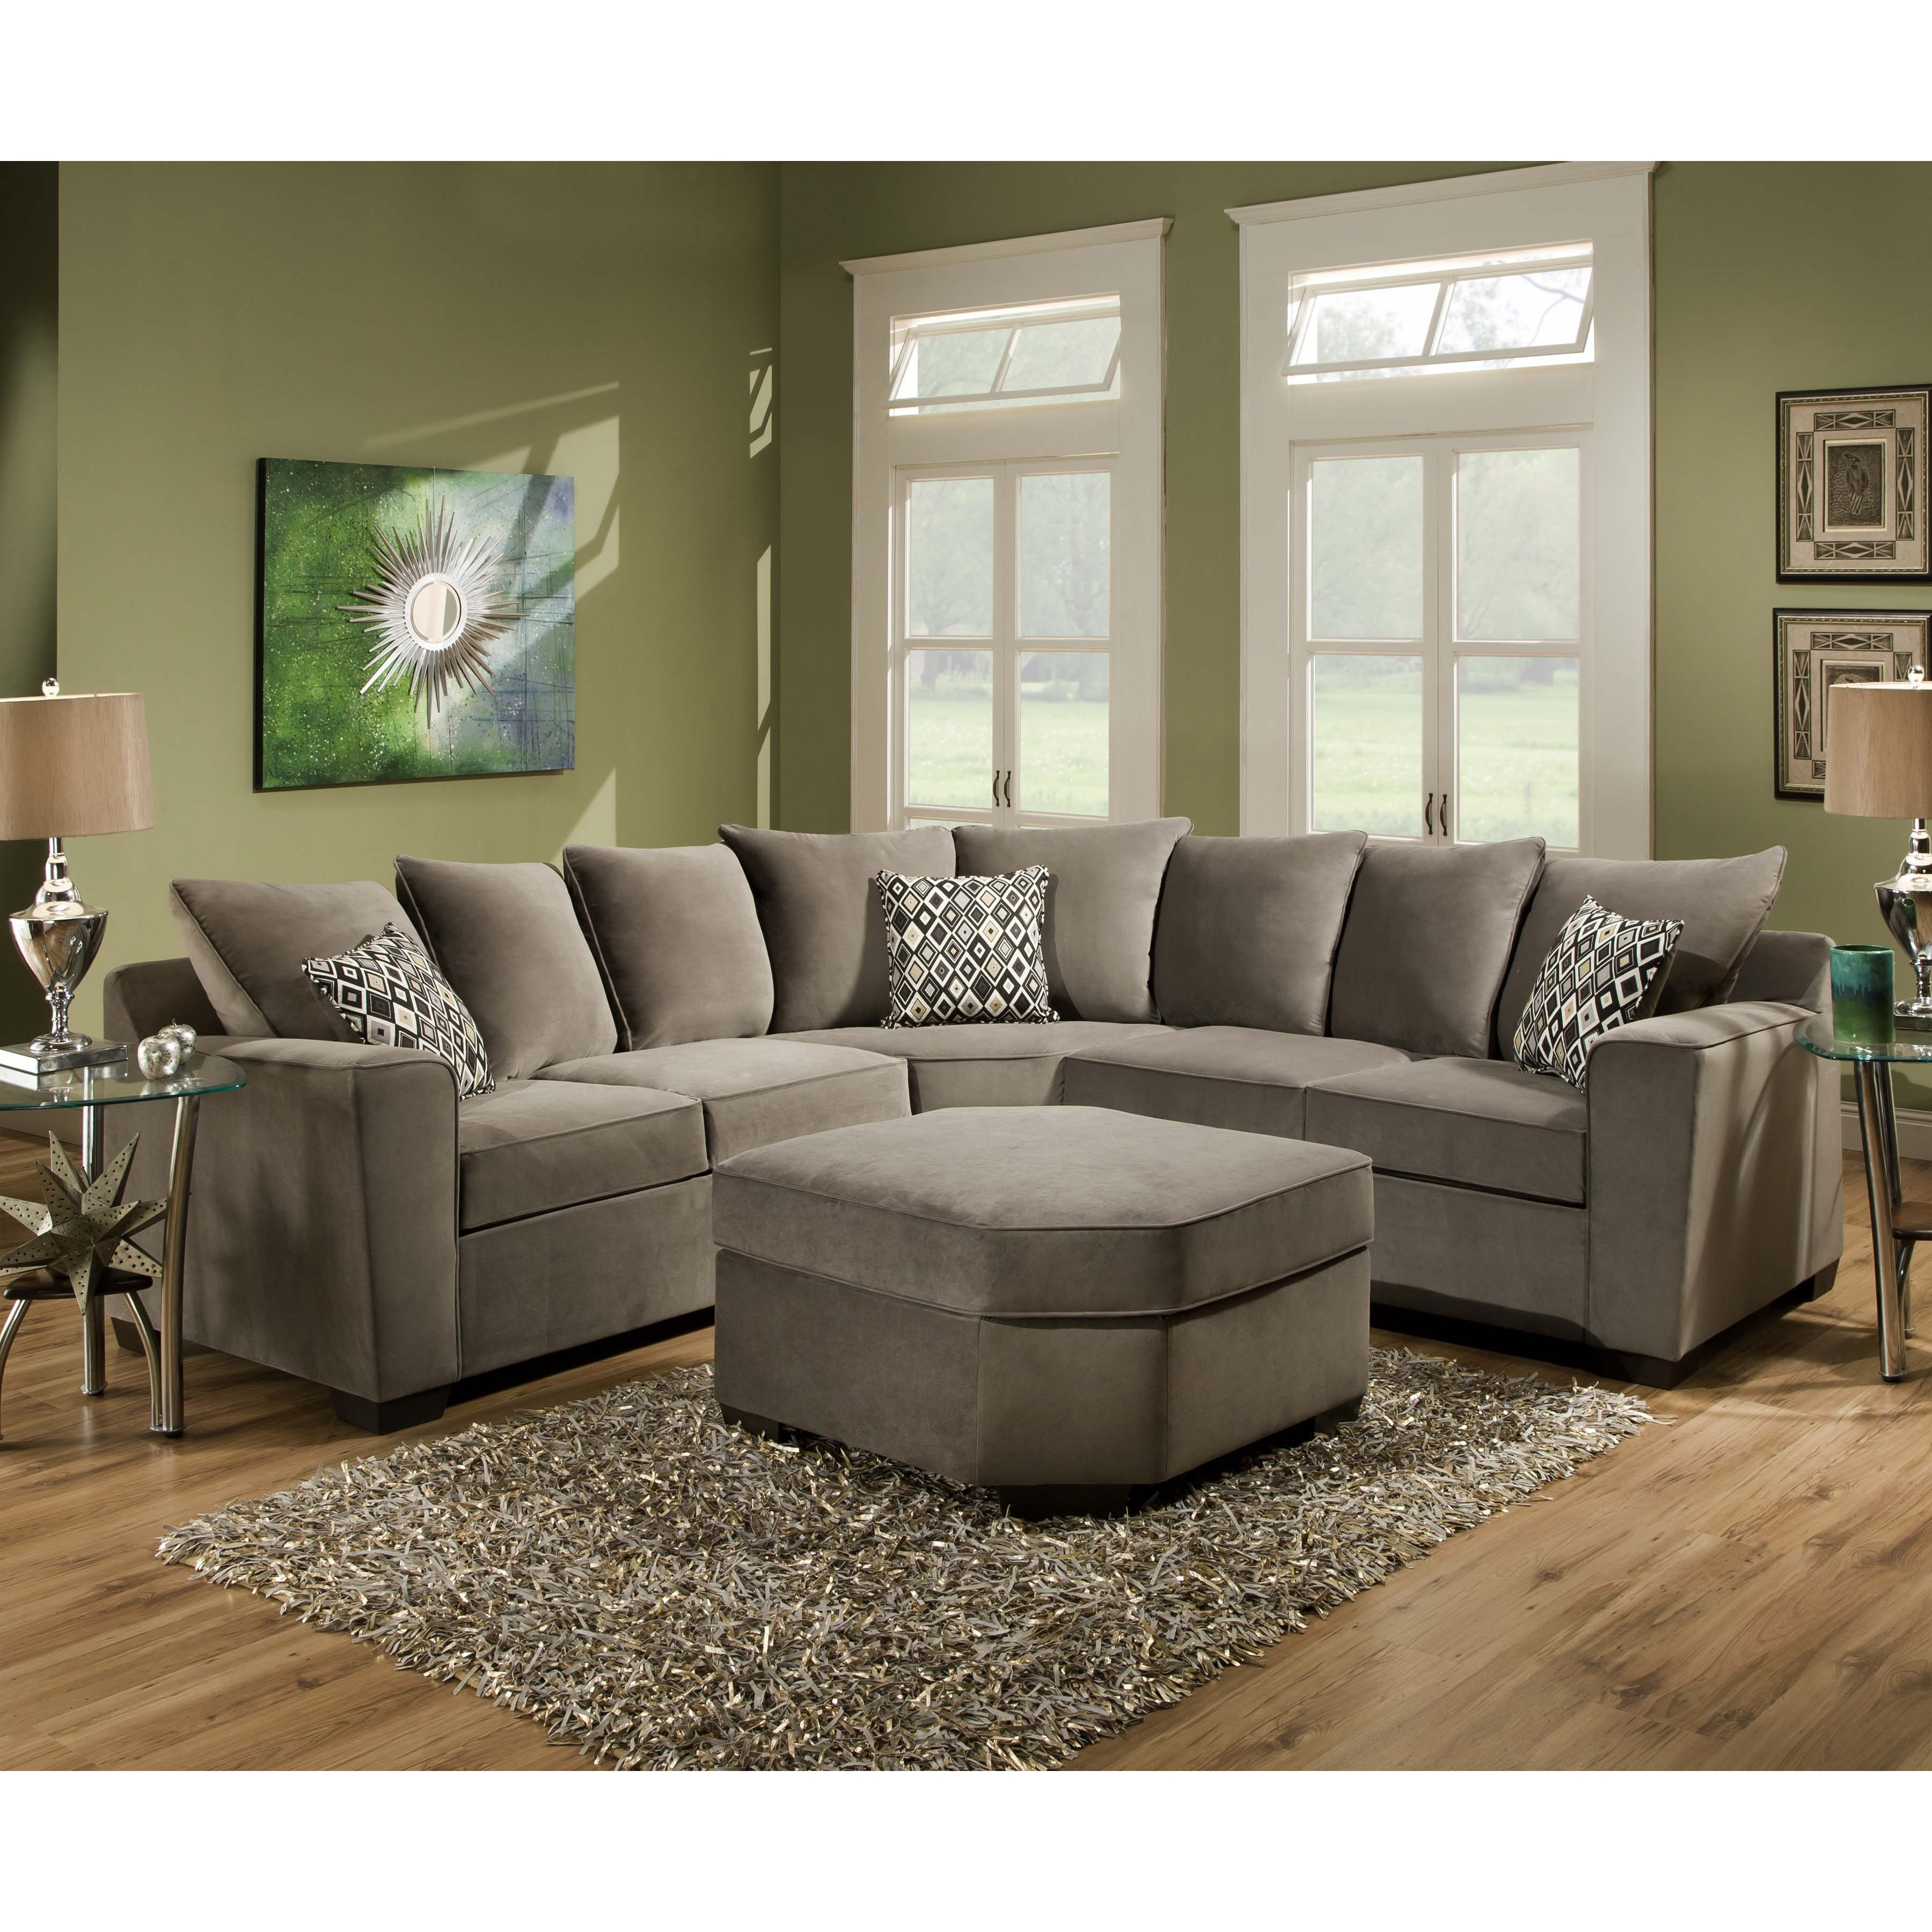 Popular Photo of American Made Sectional Sofas